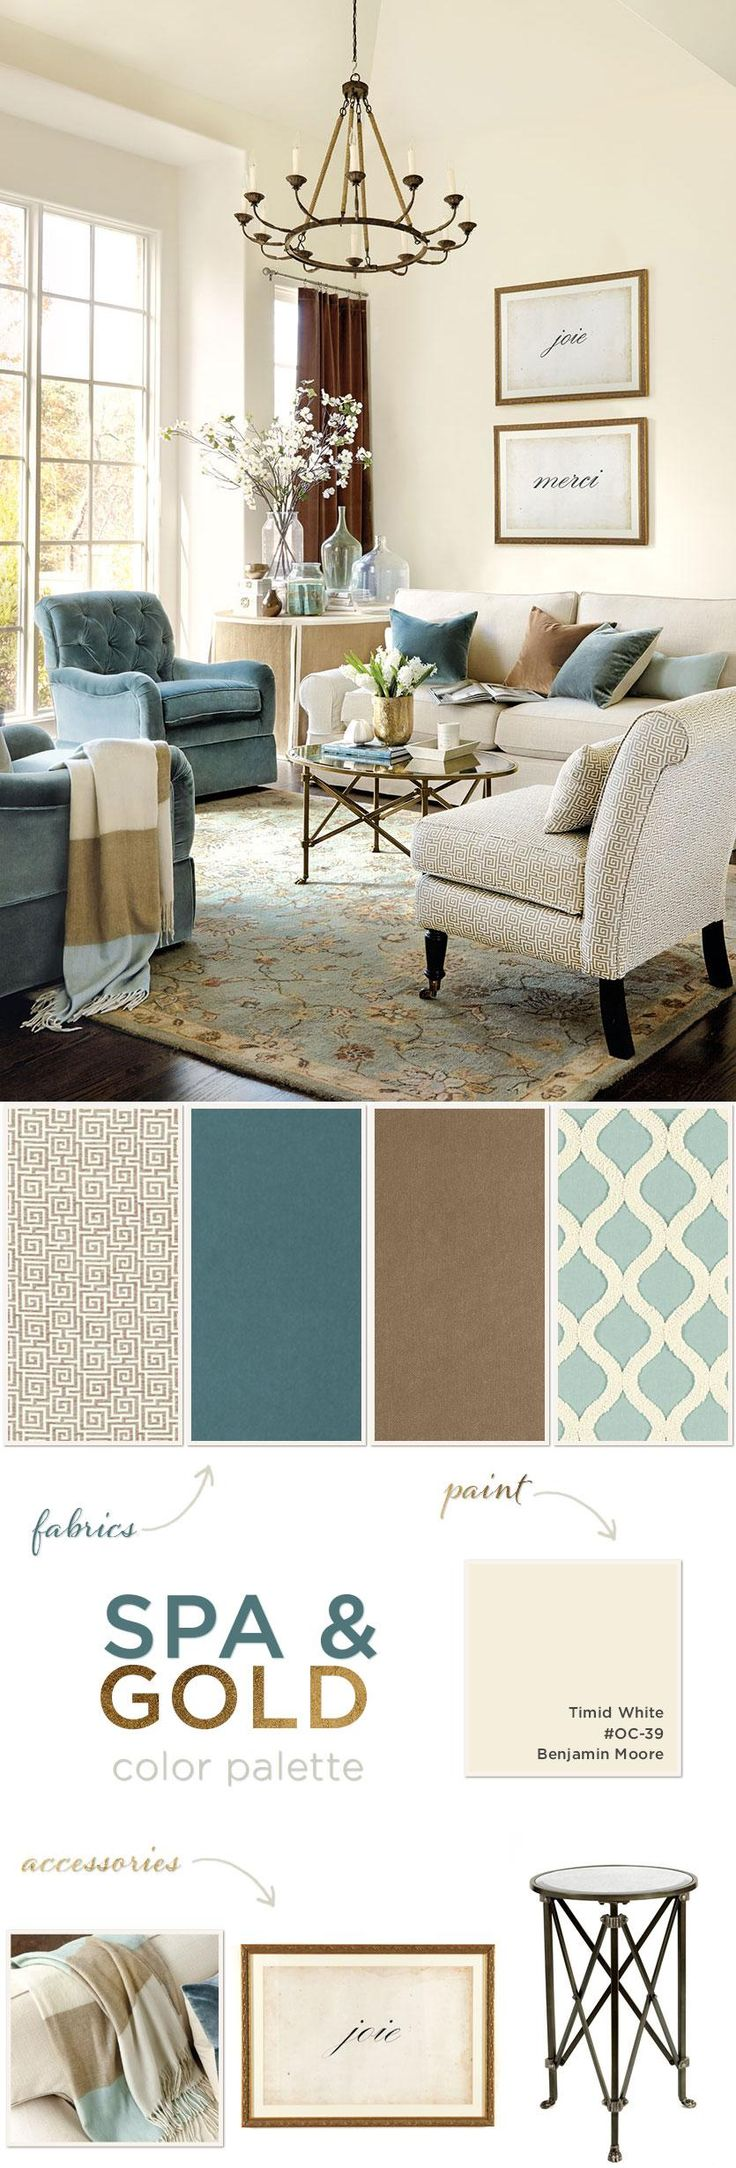 Inspired Color Palettes for Spring Living Room